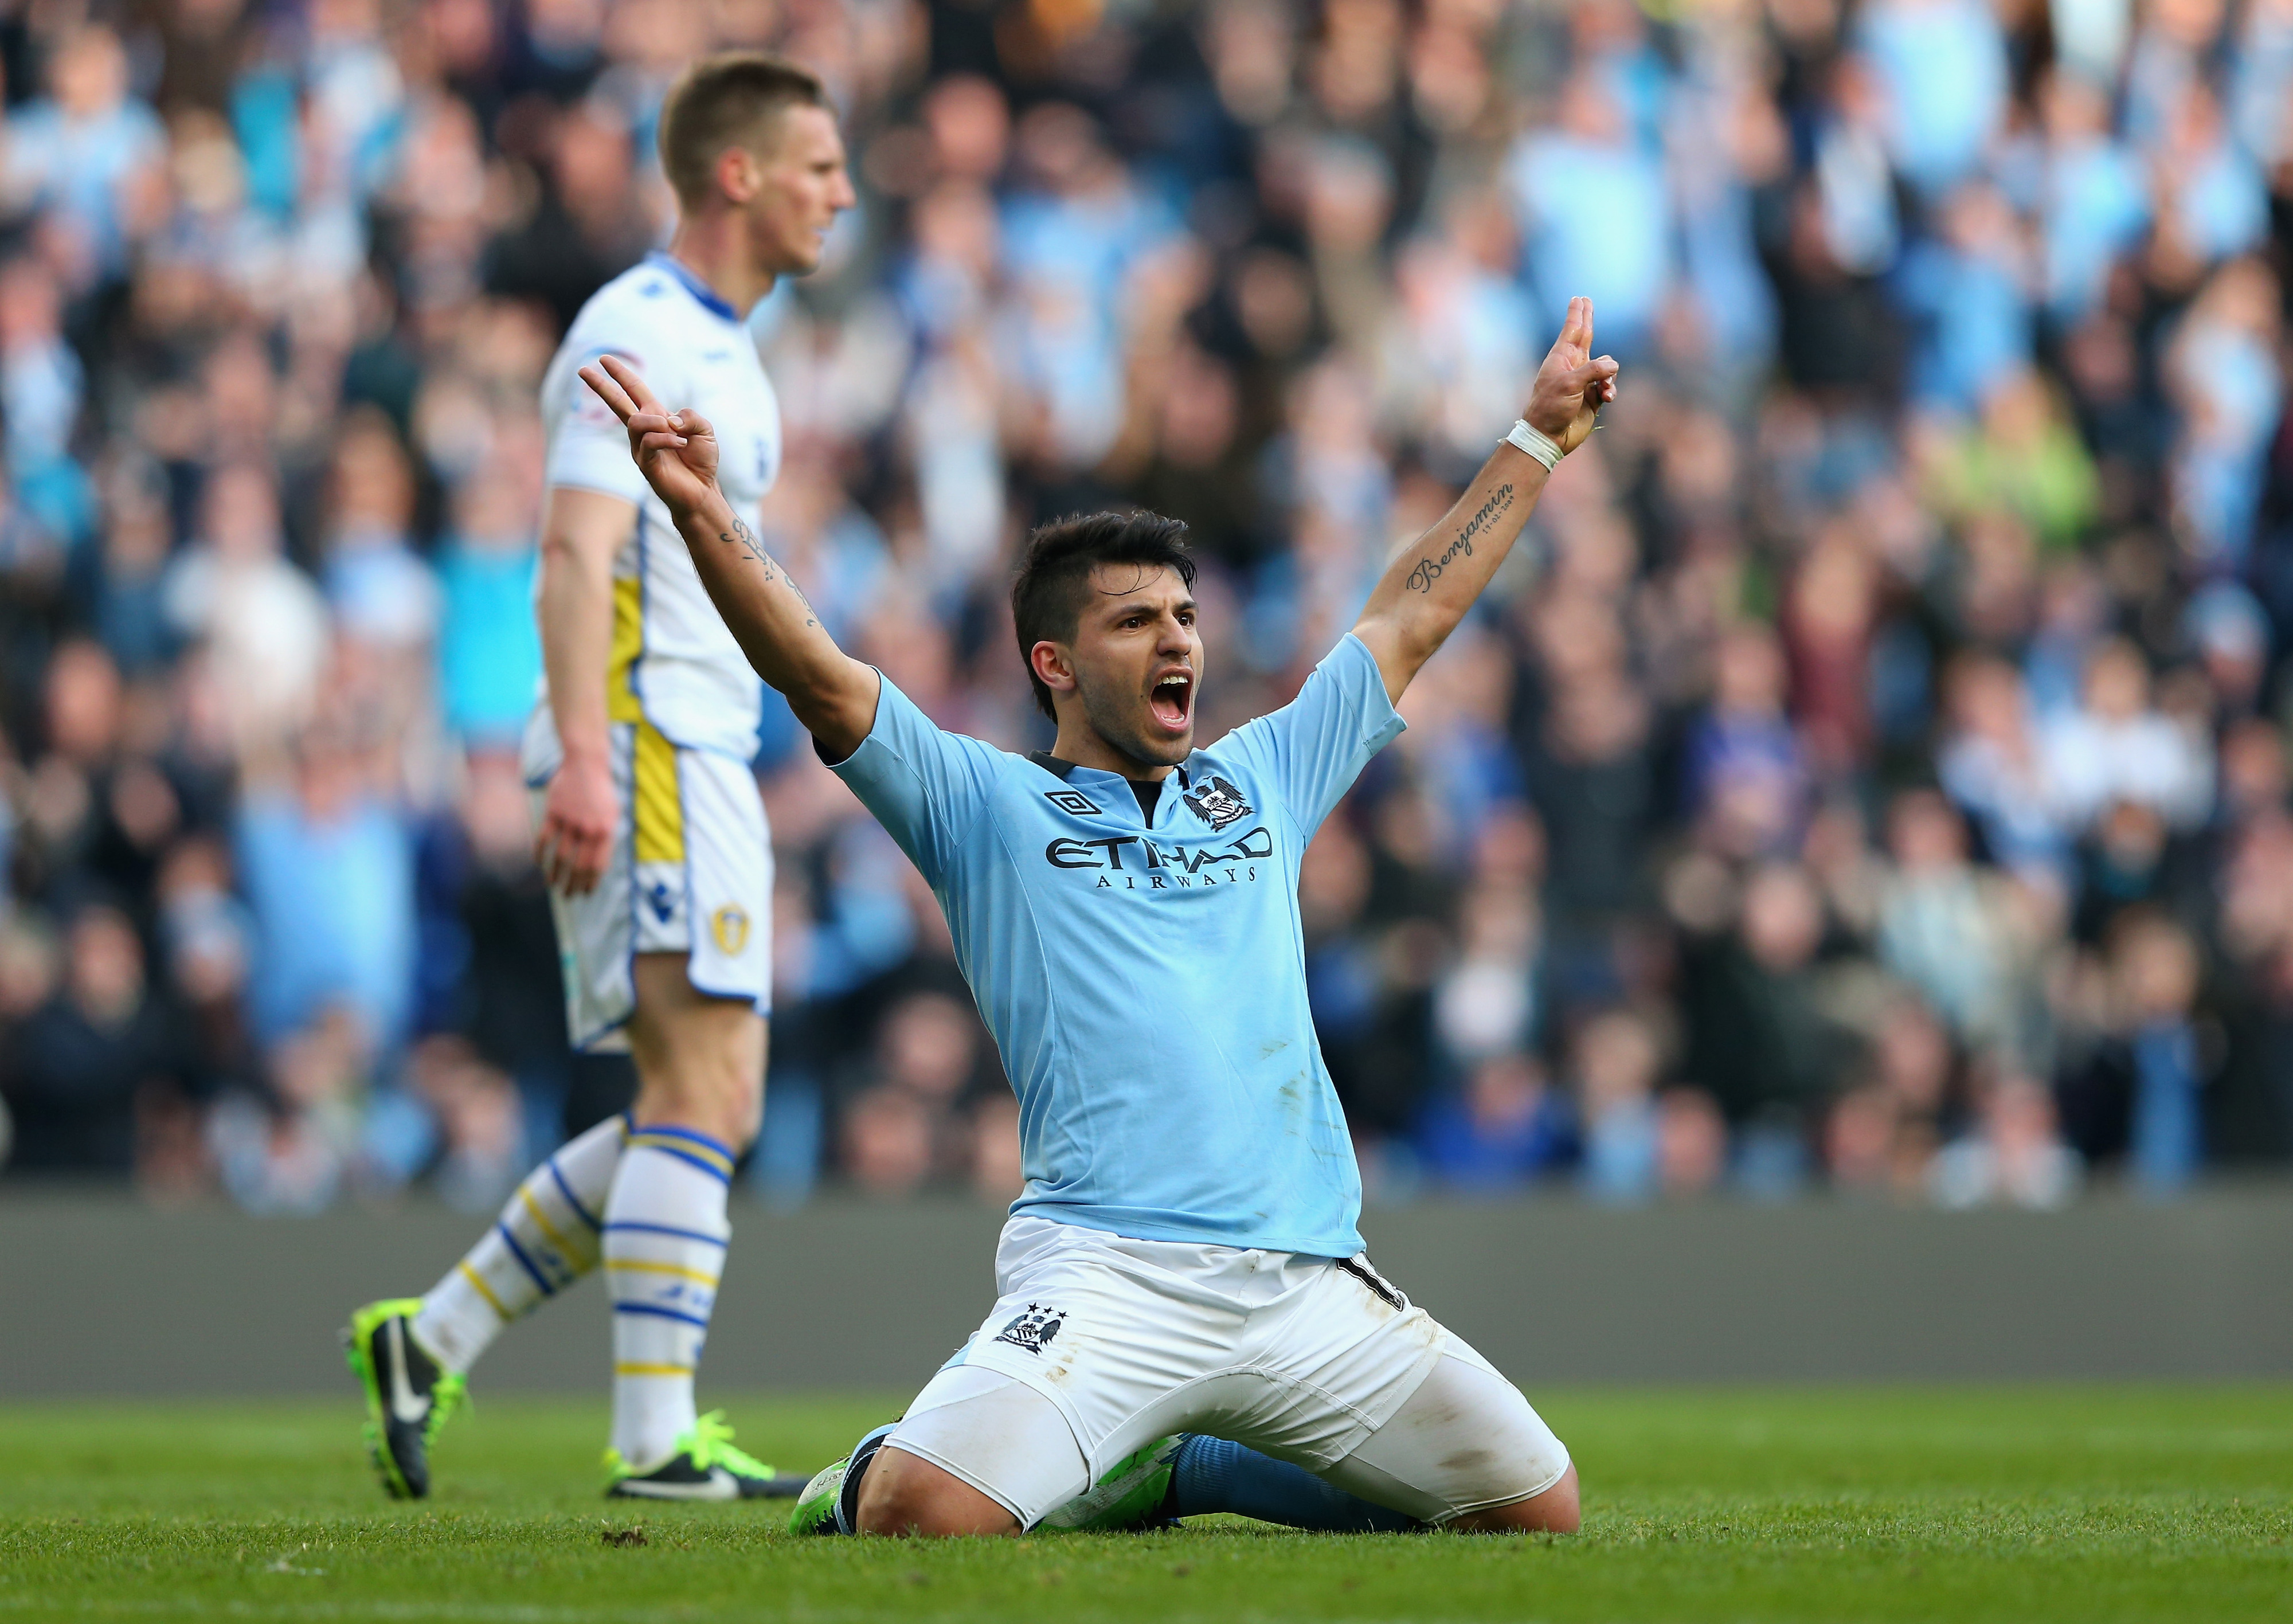 Easy does it for Man City at the Etihad against Leeds United.